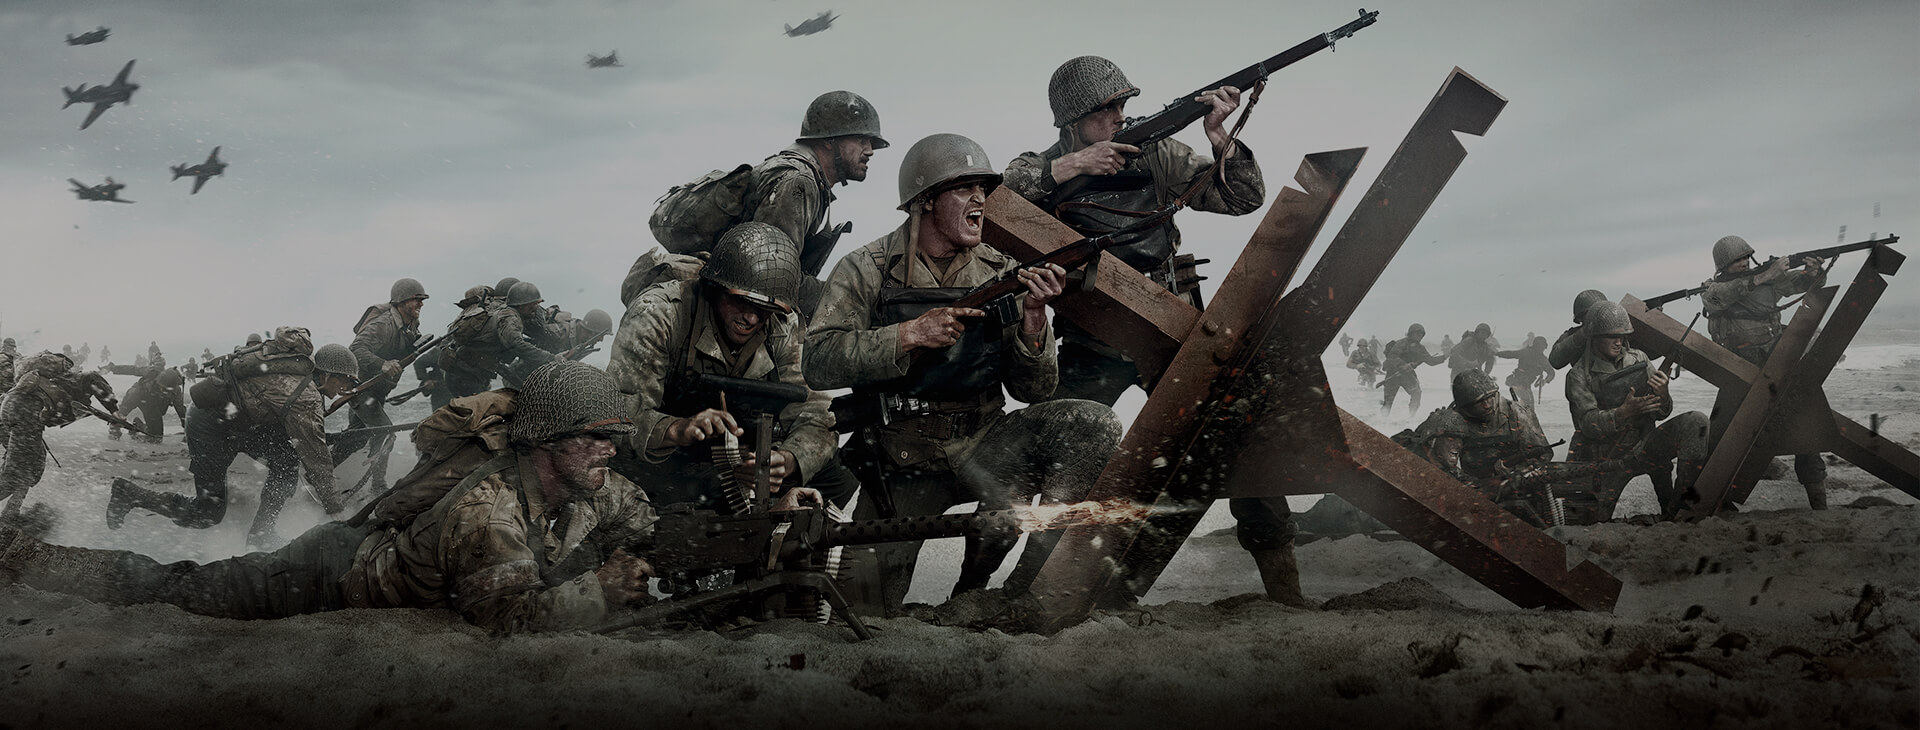 Call of Duty WWII - Influence, Live performance